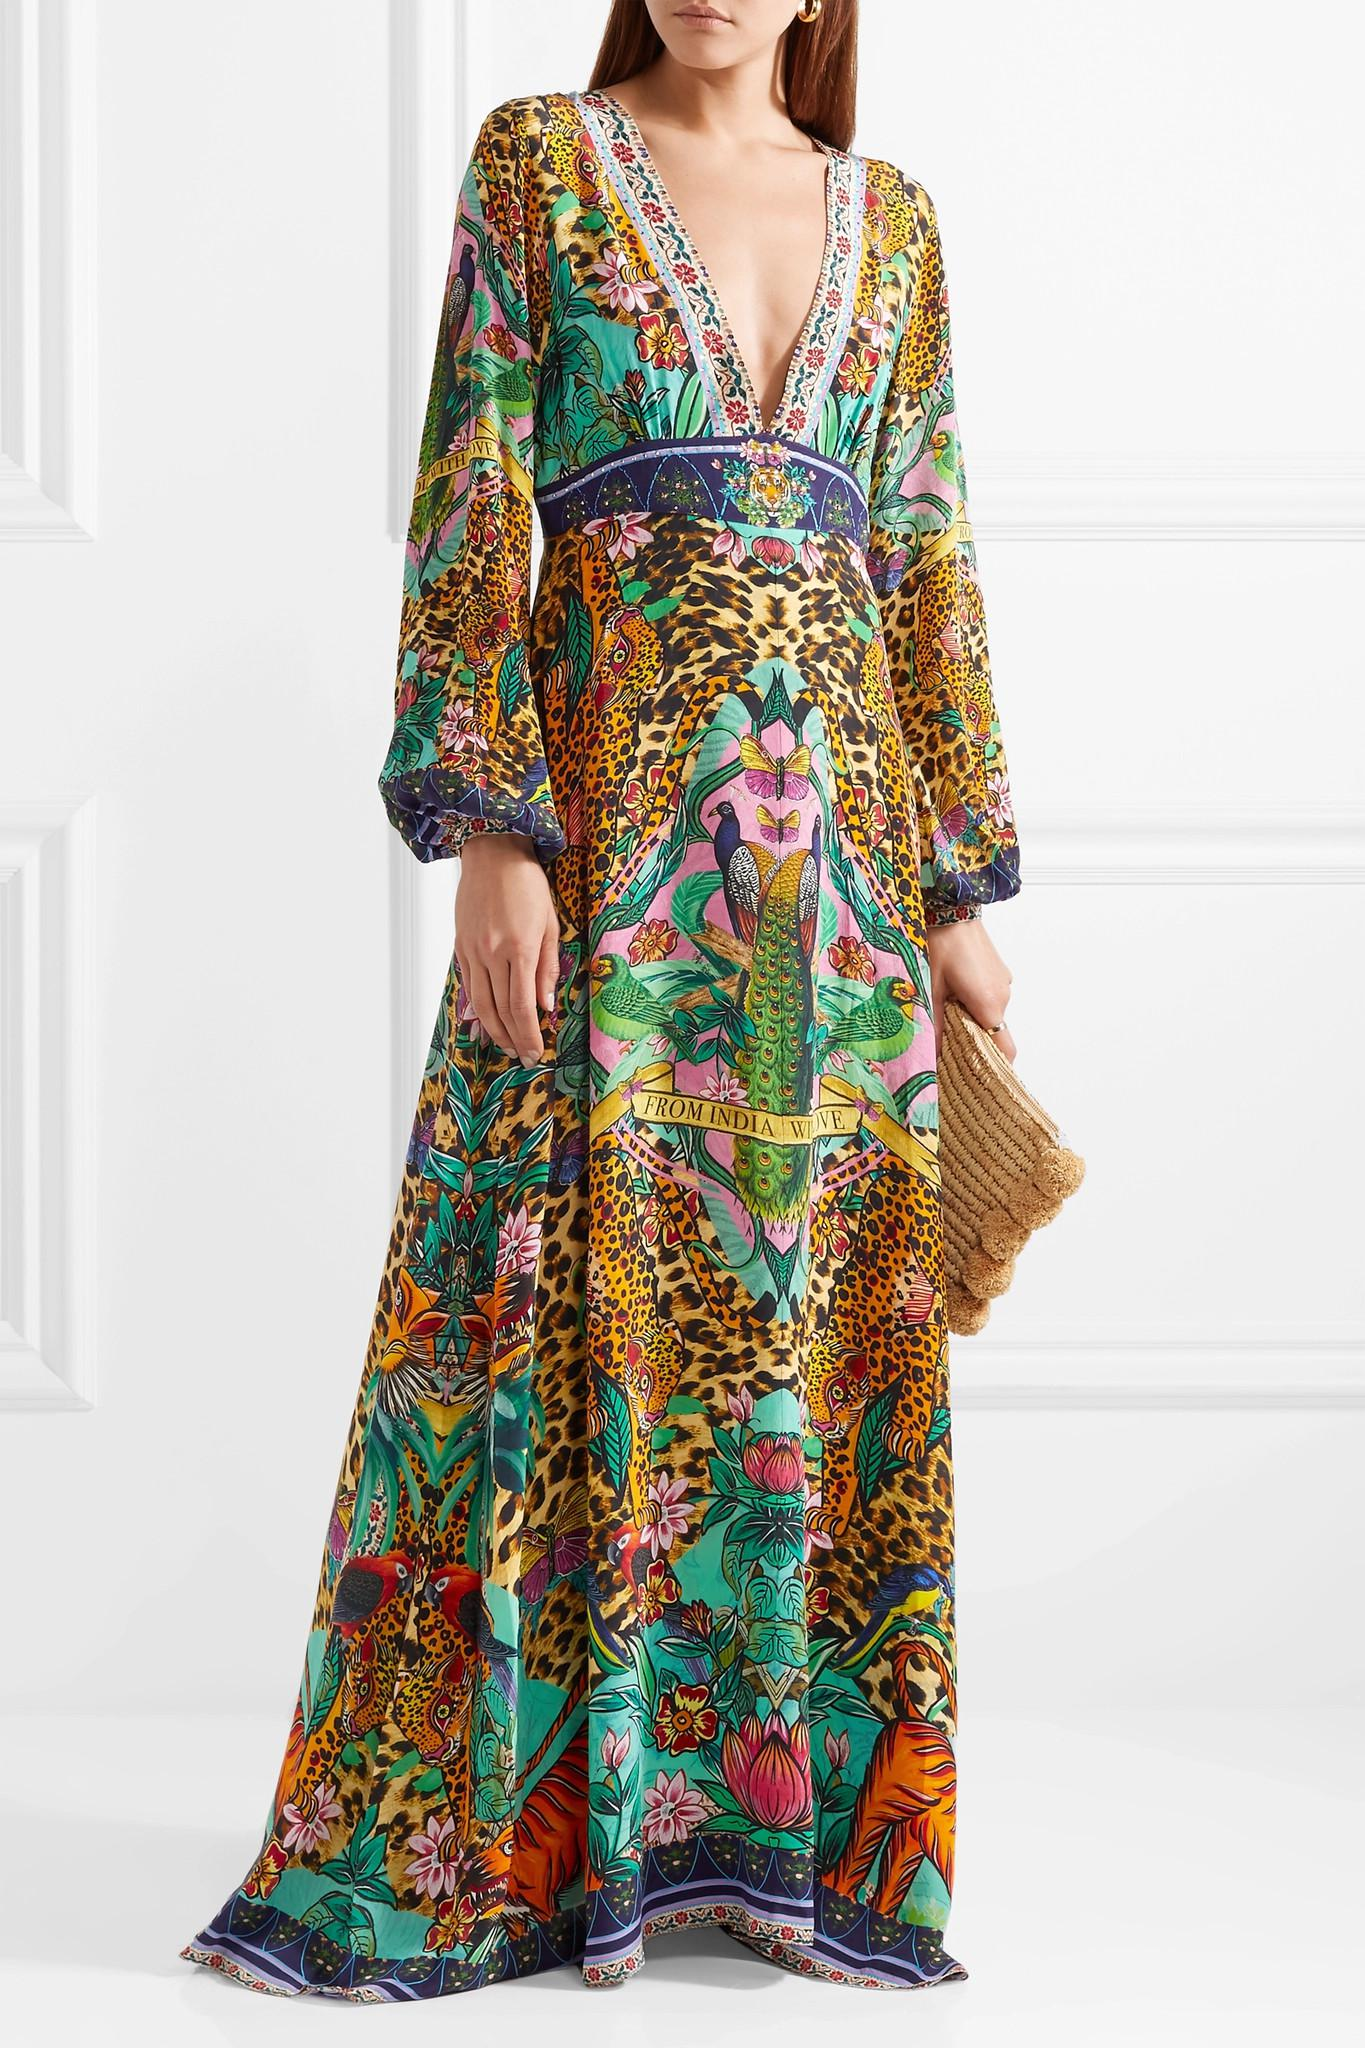 The Long Way Home Embellished Printed Silk Crepe De Chine Maxi Dress - Green Camilla Supply Sale Online TicO3KqV6d